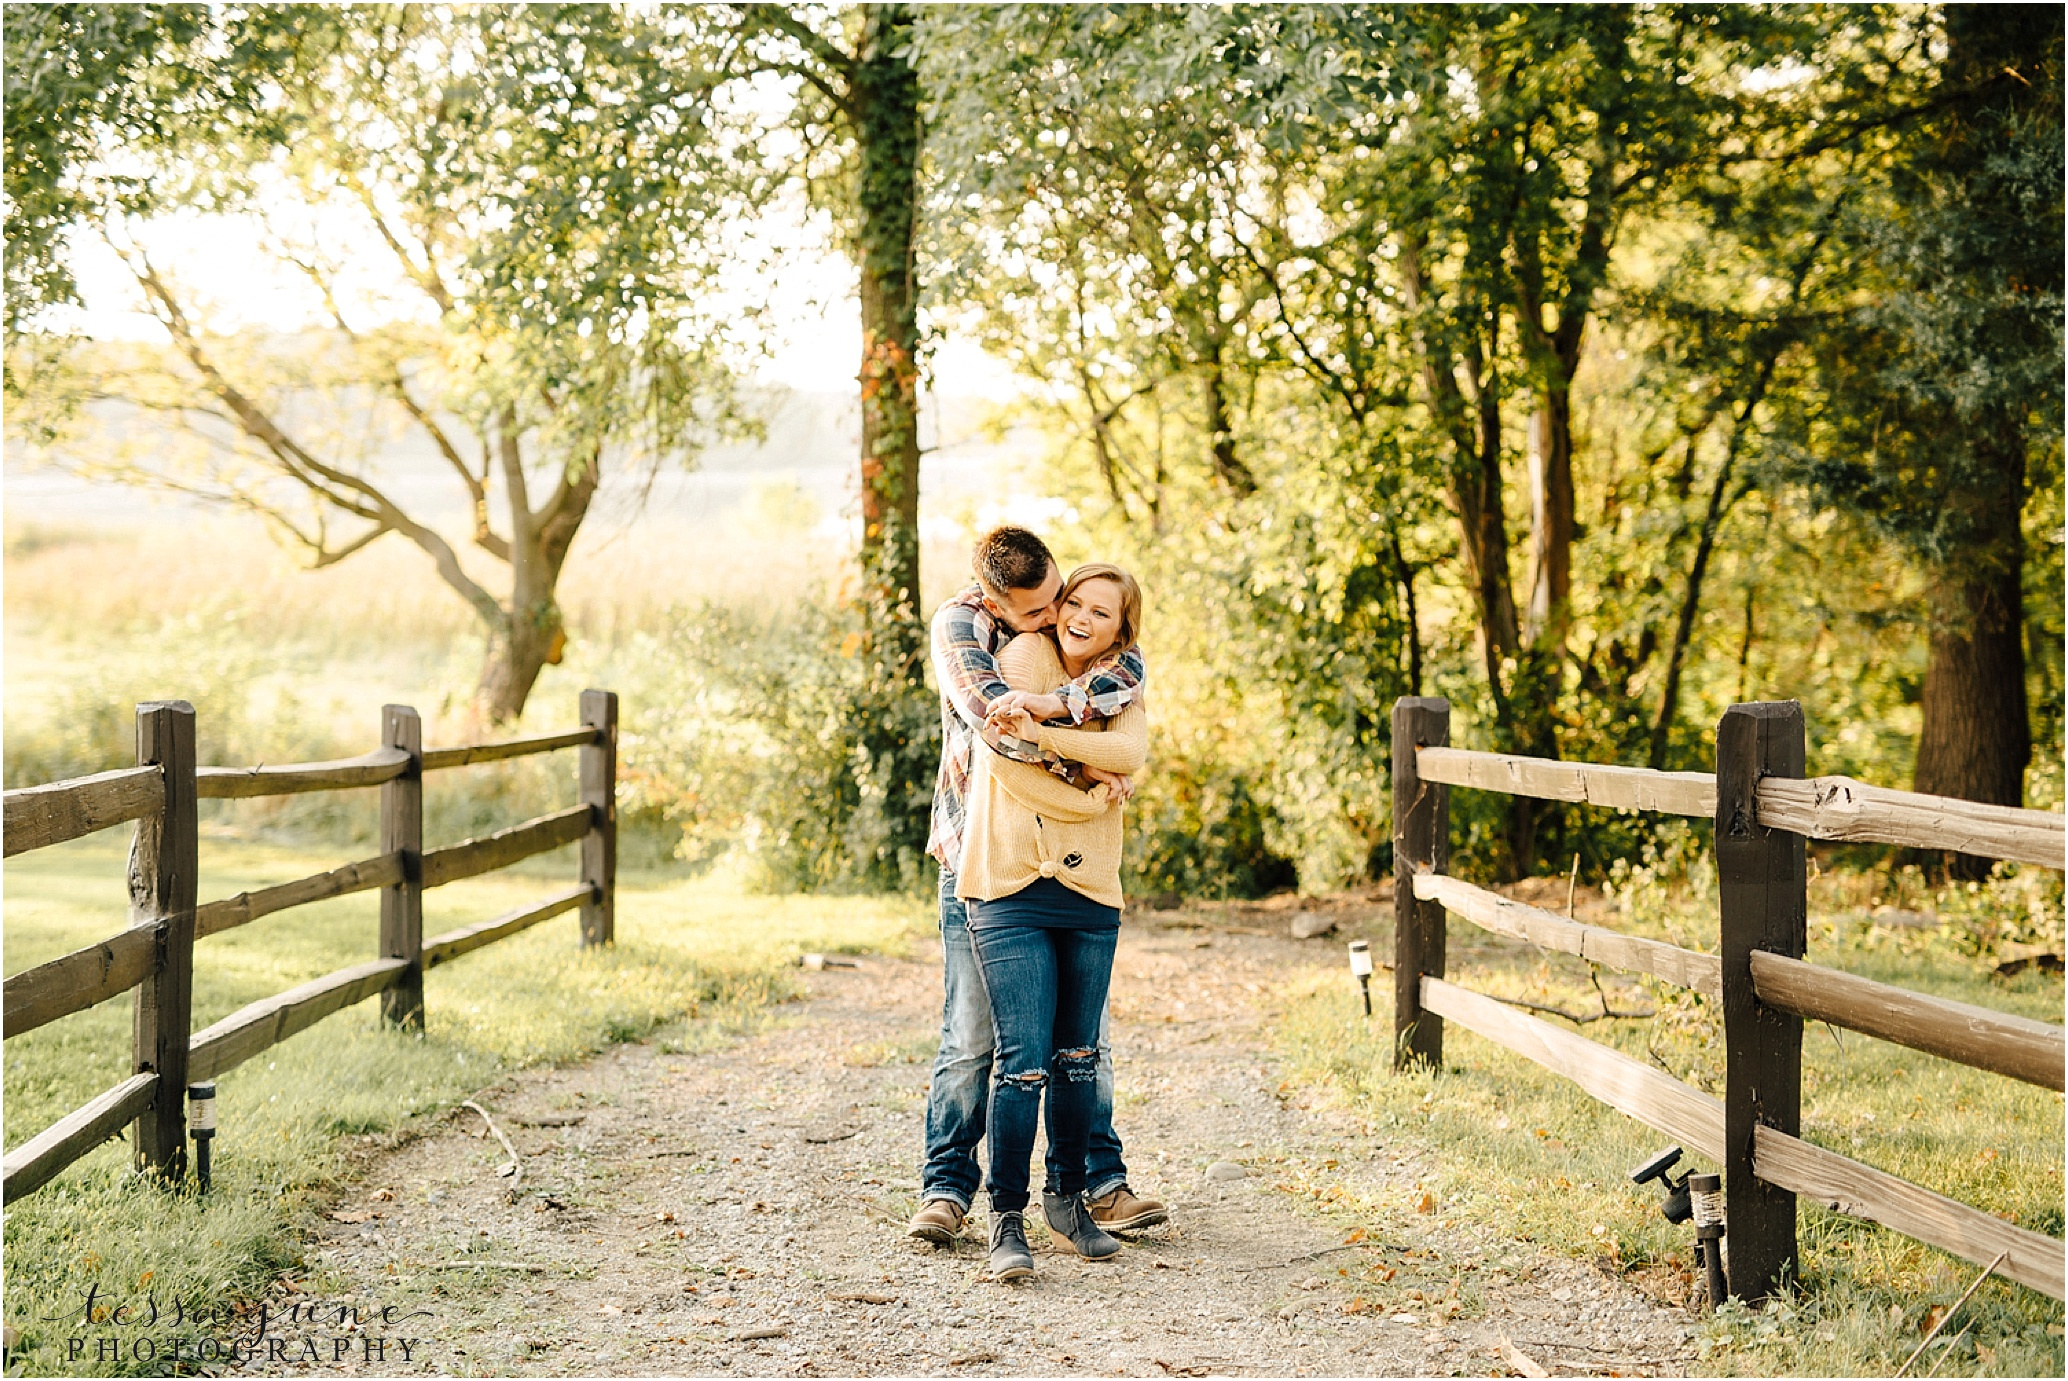 st-cloud-wedding-photographer-engagement-session-with-old-truck-22.jpg